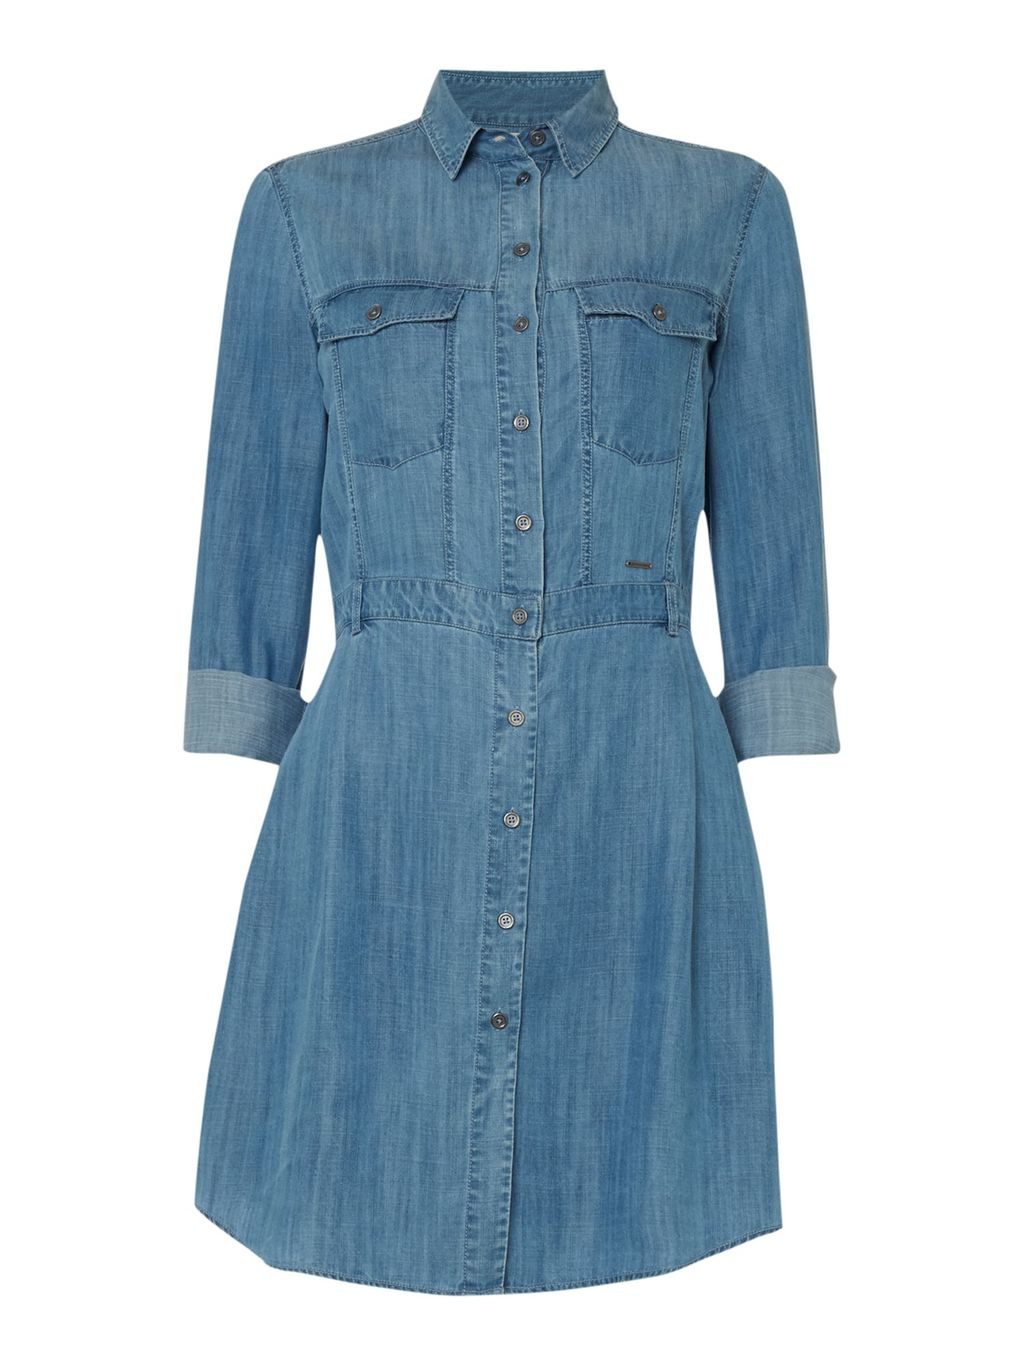 Rivian Denim Shirt Dress, Indigo - style: shirt; neckline: shirt collar/peter pan/zip with opening; fit: fitted at waist; pattern: plain; predominant colour: denim; occasions: casual; length: just above the knee; fibres: cotton - 100%; sleeve length: 3/4 length; sleeve style: standard; texture group: denim; pattern type: fabric; season: s/s 2016; wardrobe: basic